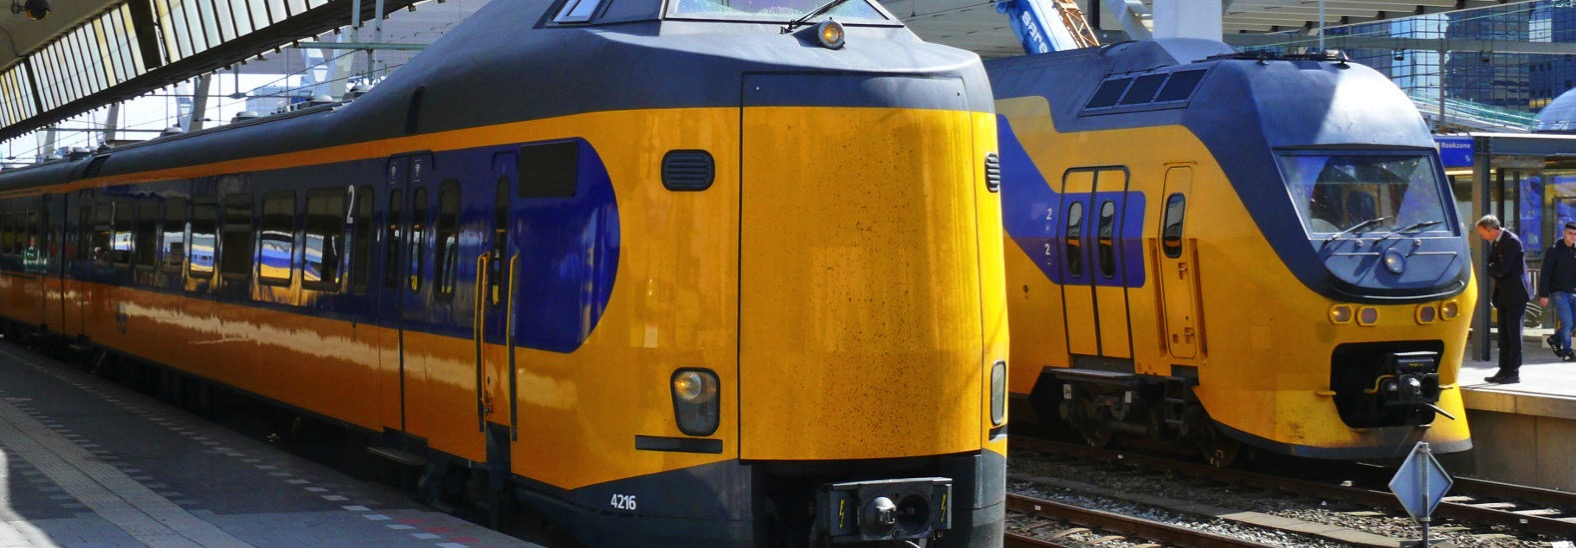 Netherlands electric trains wind powered 1 1580x549